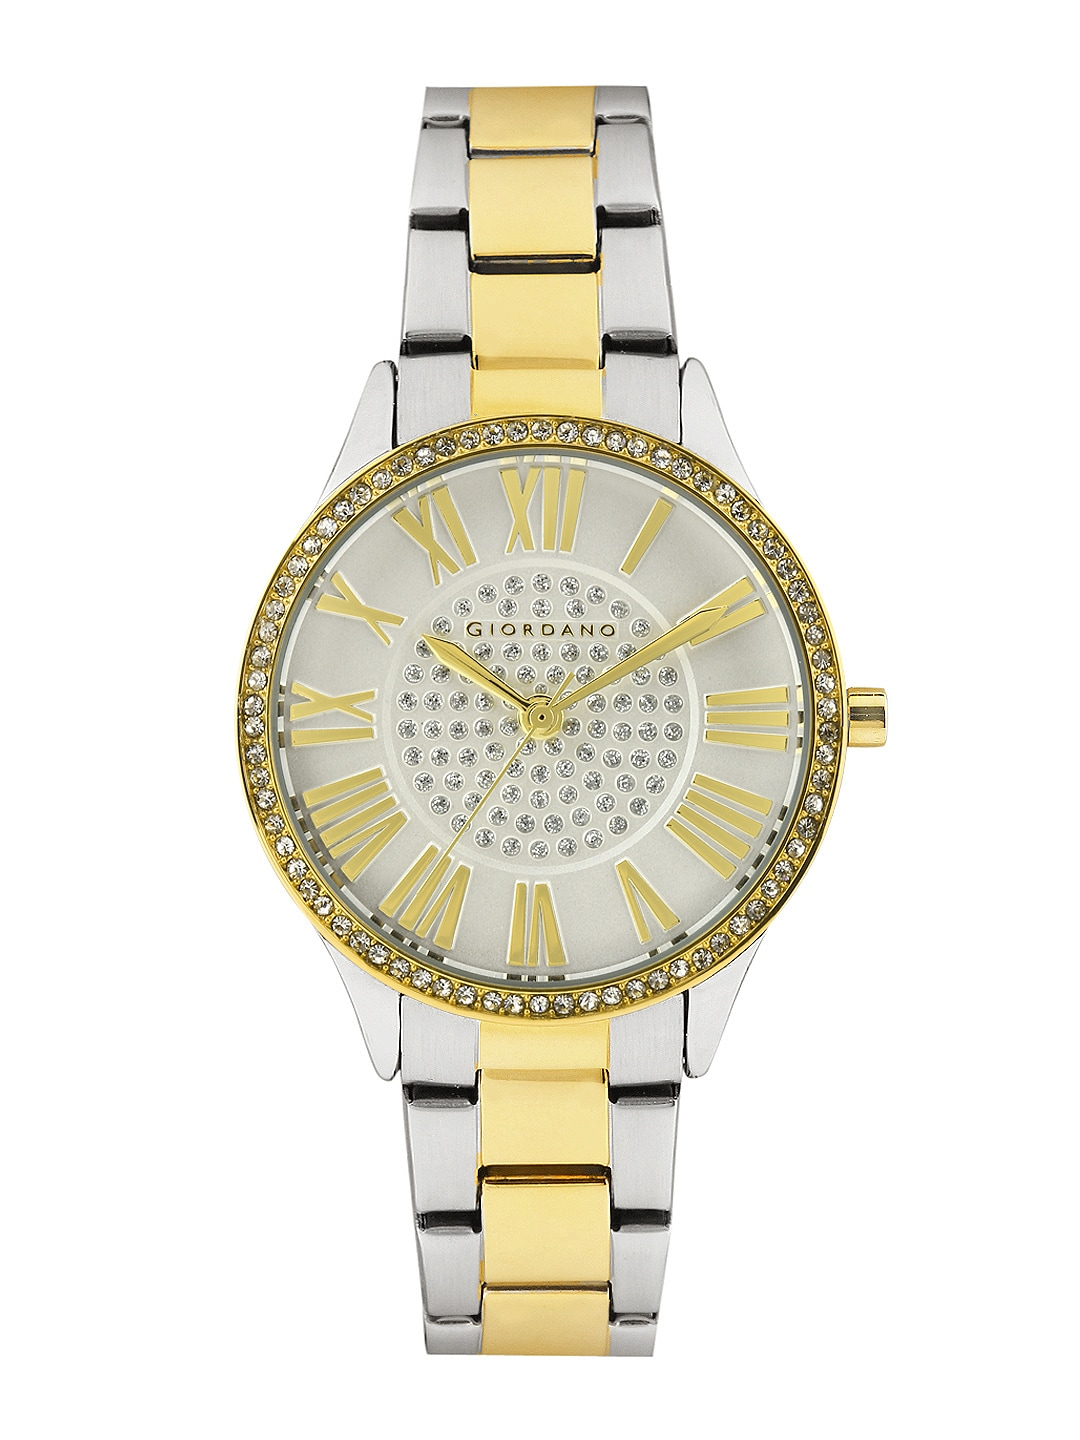 GIORDANO Women White Dial Watch A2031